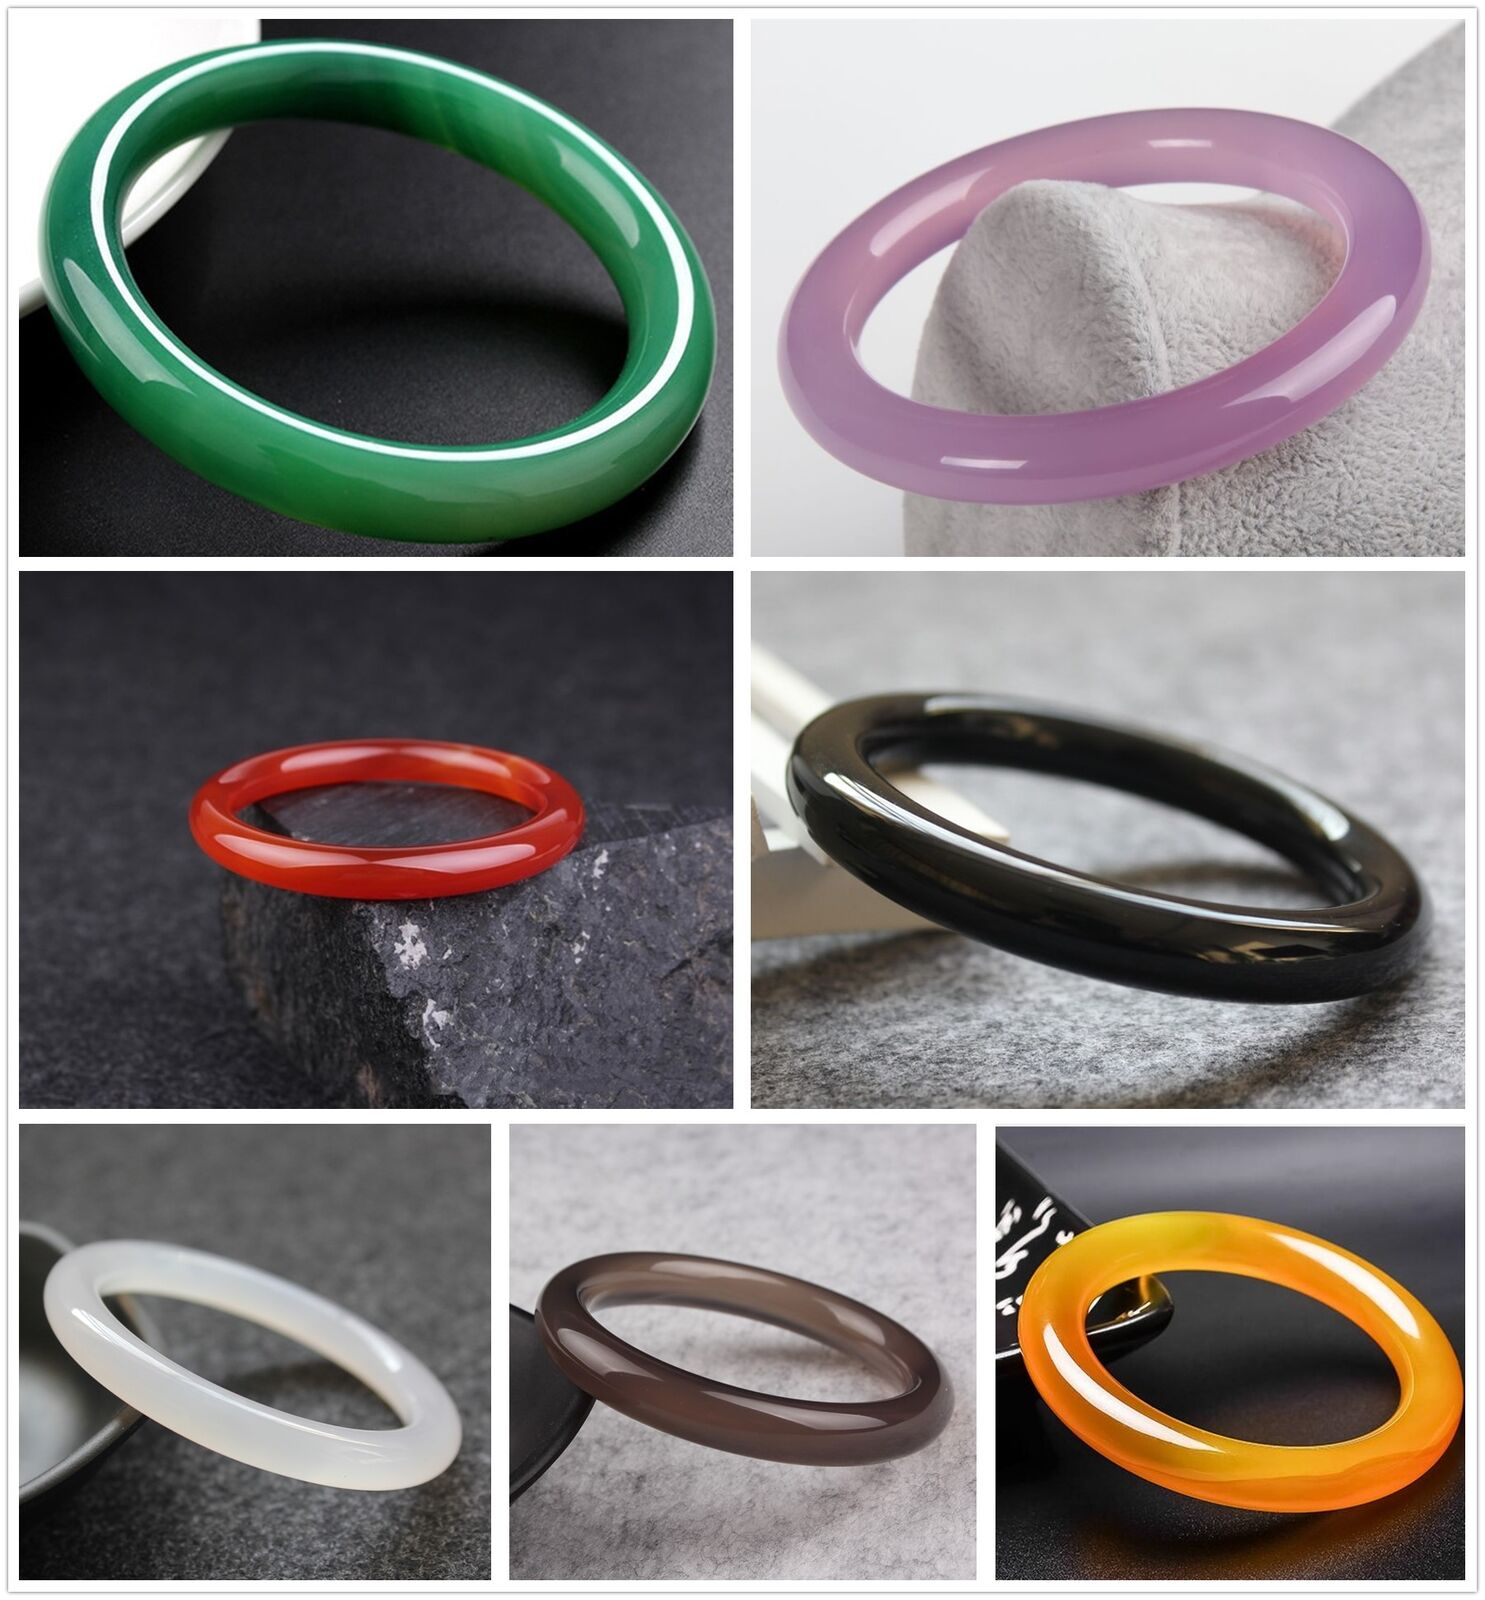 Fashion 100/% Natural Line Agate Chalcedony Jewelry Bangle Bracelet 56mm-62mm